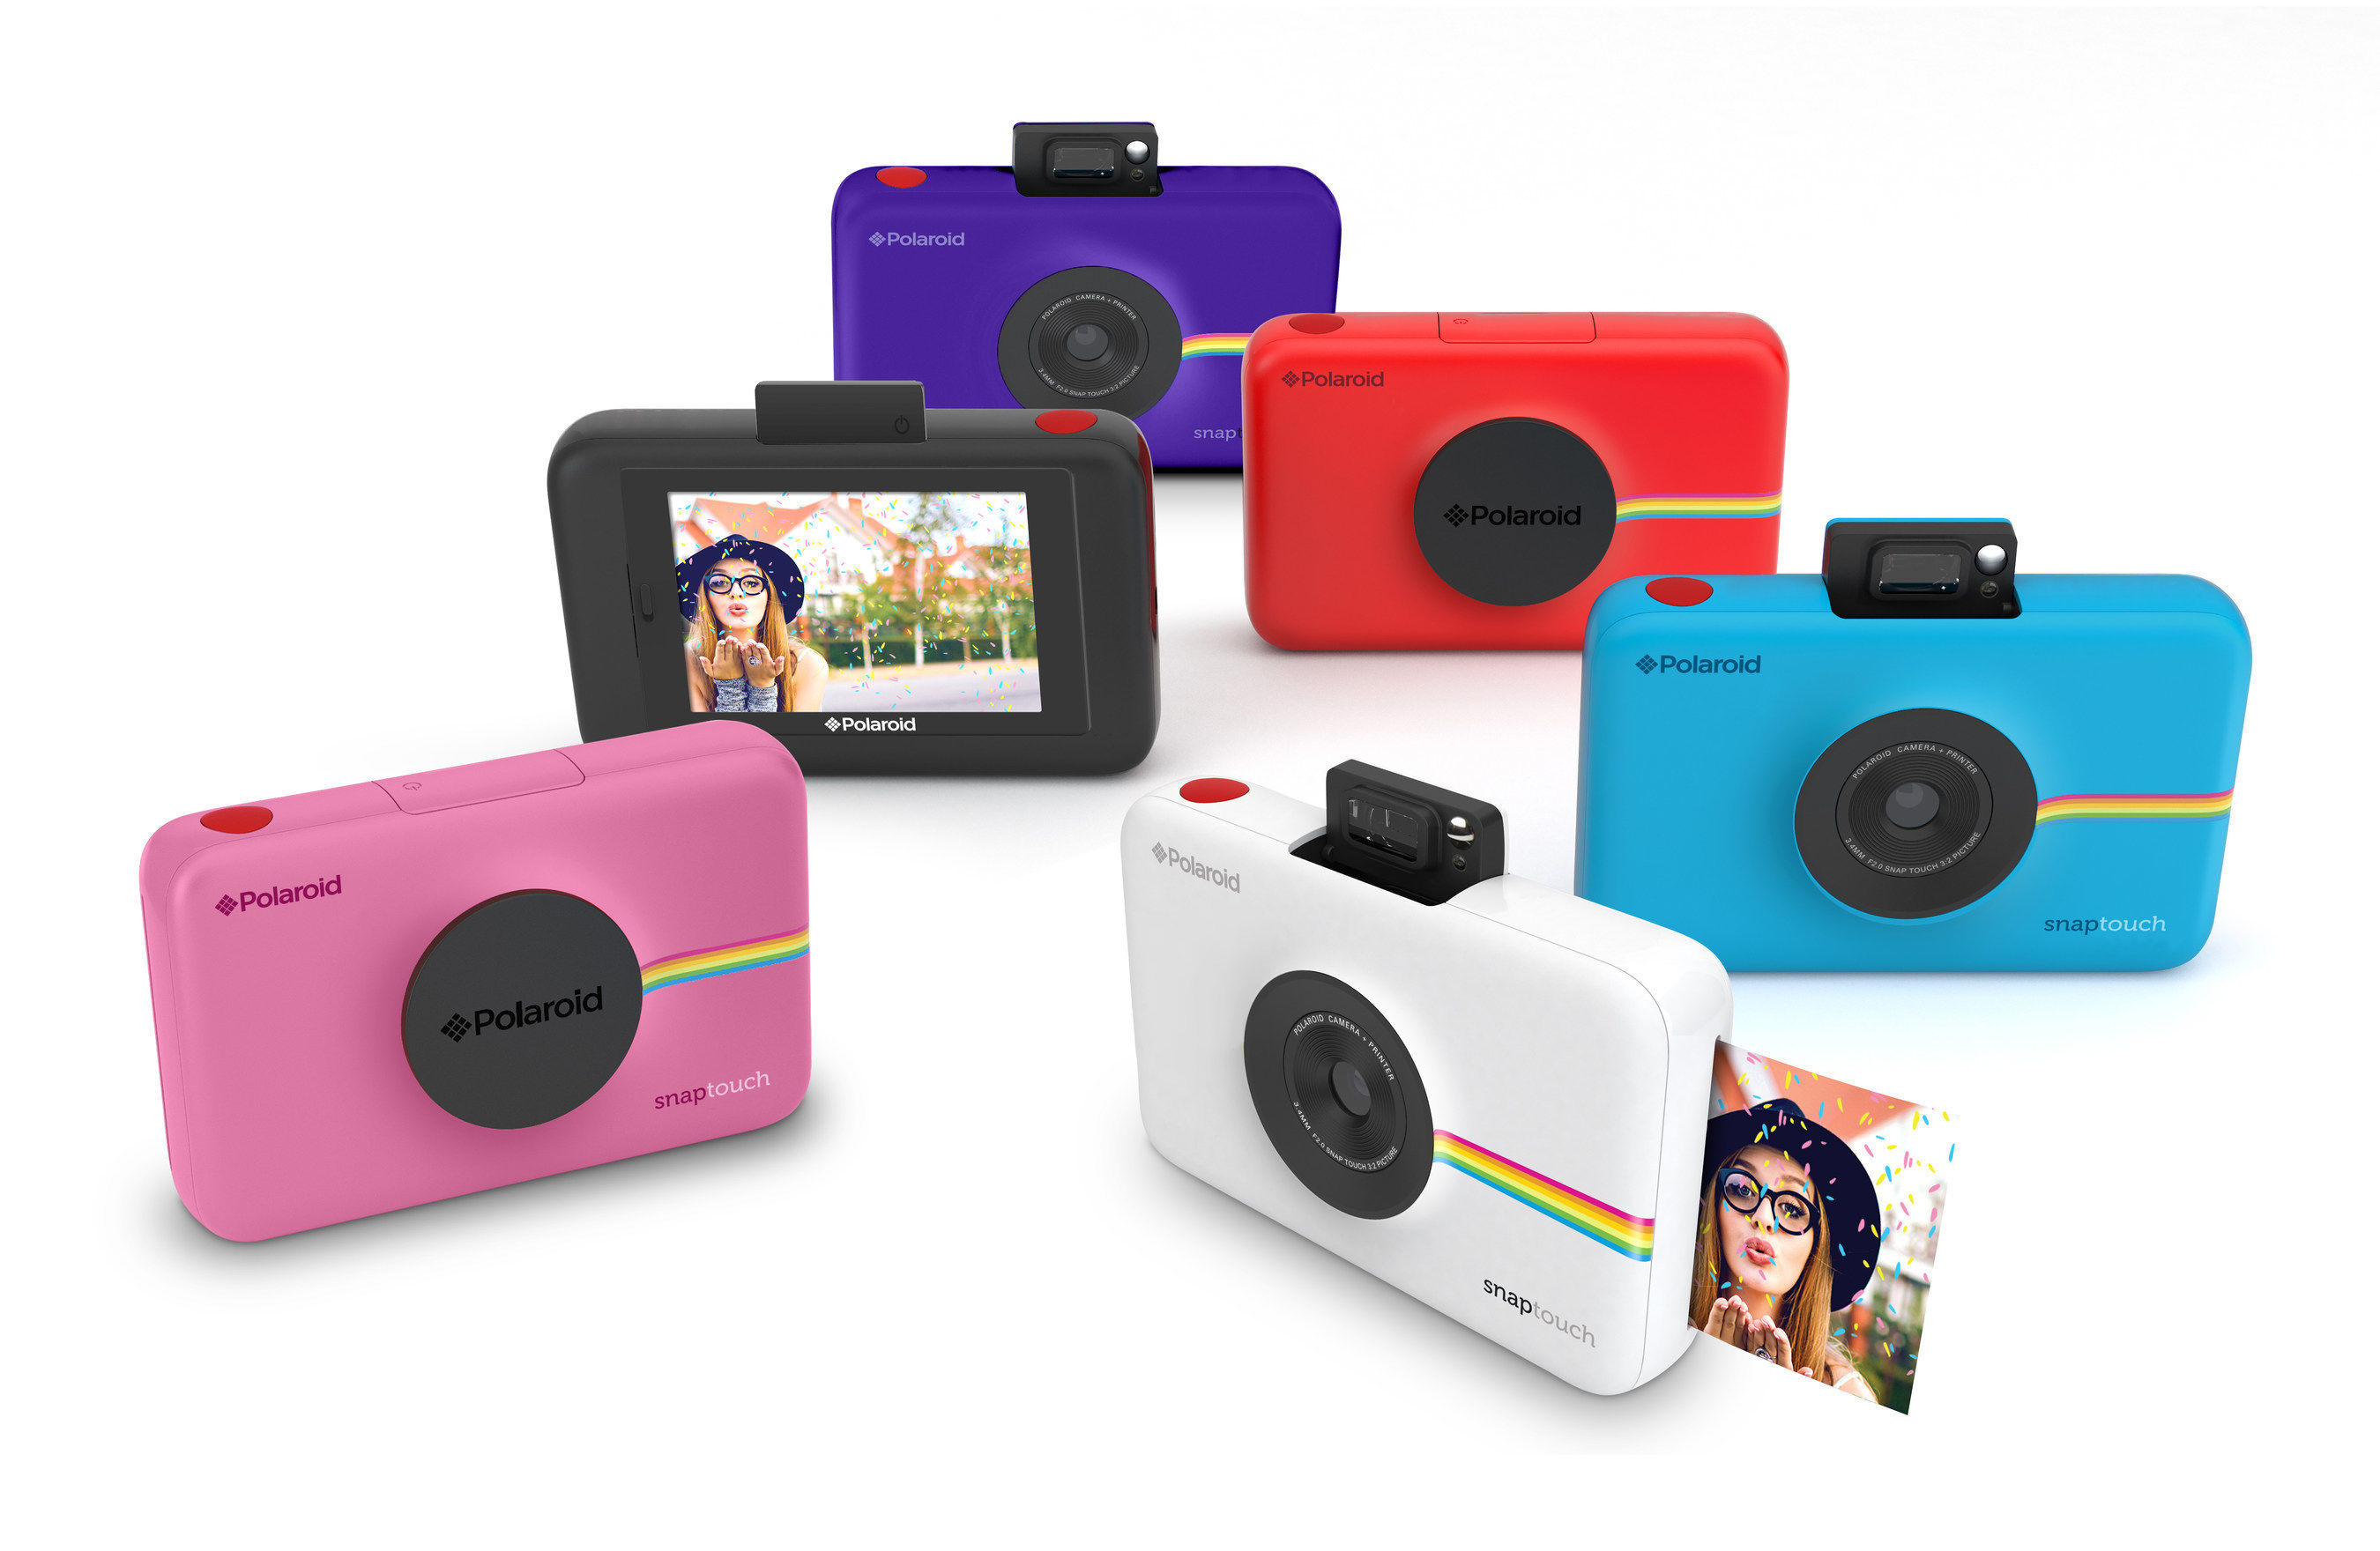 306da736b7 The Polaroid Snap Touch instant digital camera is now available for  pre-order.